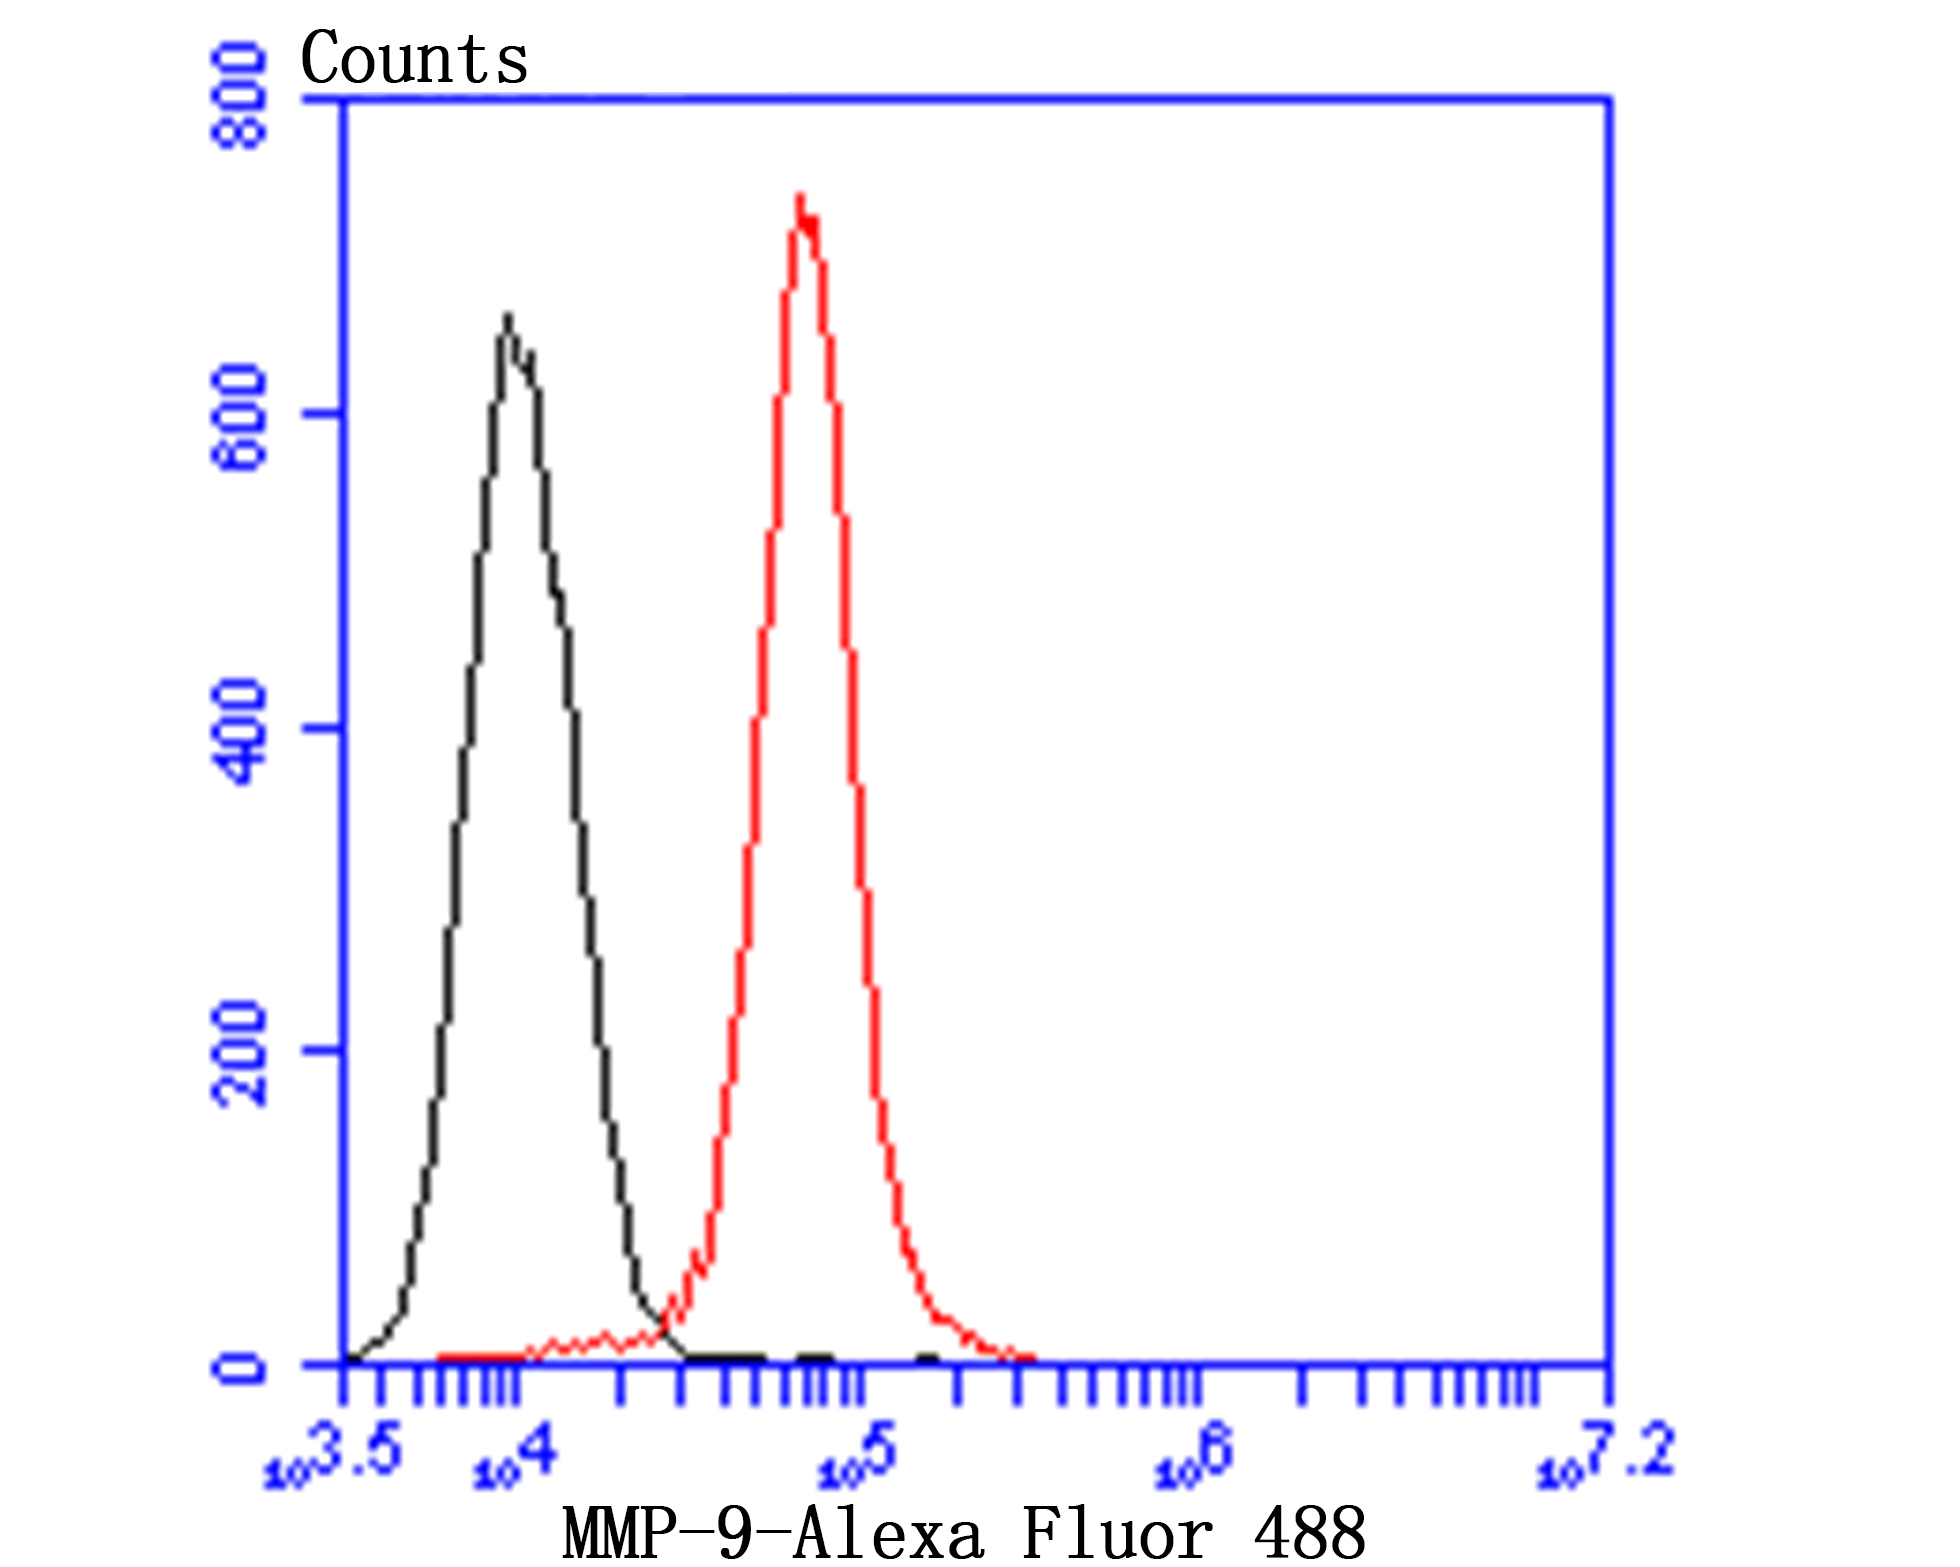 Flow cytometric analysis of MMP9 was done on MG-63 cells. The cells were fixed, permeabilized and stained with MMP9 antibody at 1/100 dilution (red) compared with an unlabelled control (cells without incubation with primary antibody; black). After incubation of the primary antibody on room temperature for 1 hour, the cells was stained with a Alexa Fluor™ 488-conjugated goat anti-rabbit IgG Secondary antibody at 1/500 dilution for 30 minutes.